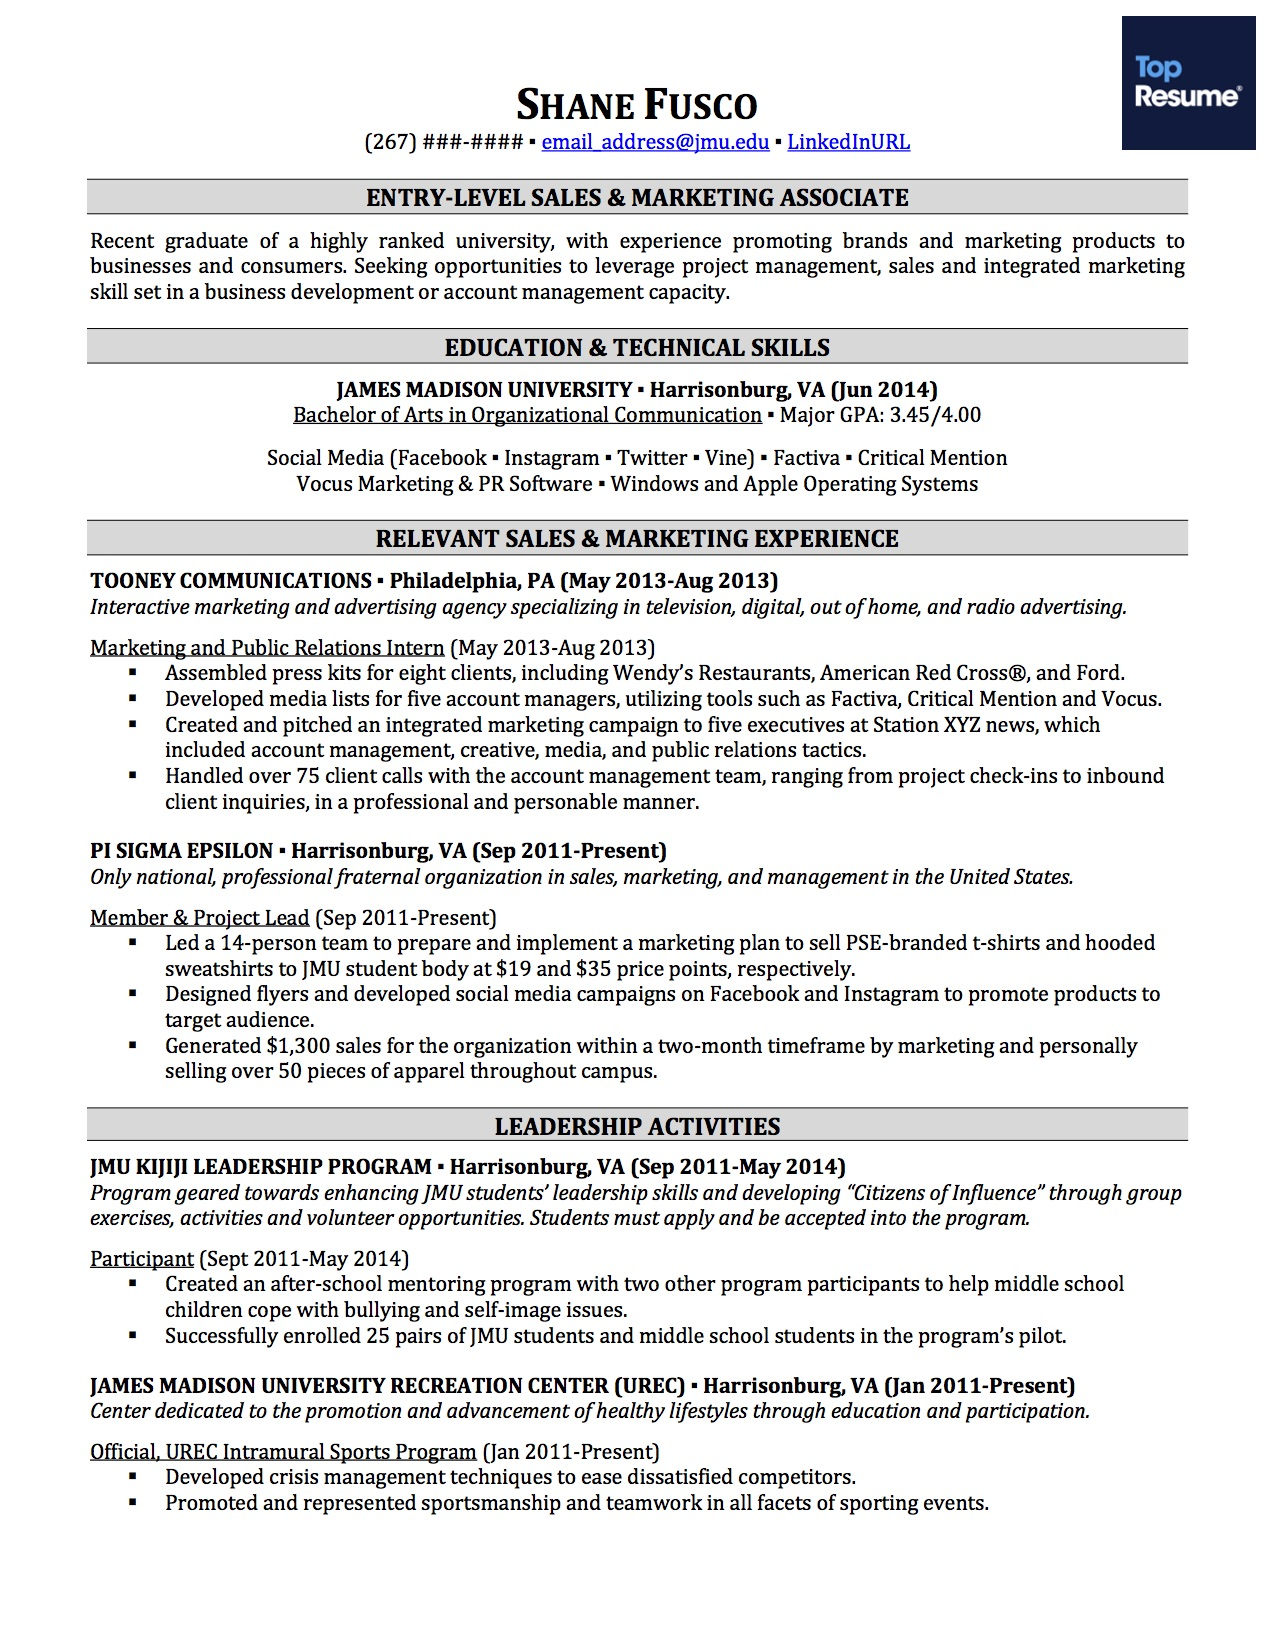 decide on a resume format - 54 Sample Thank You Letter Business Opportunity Good